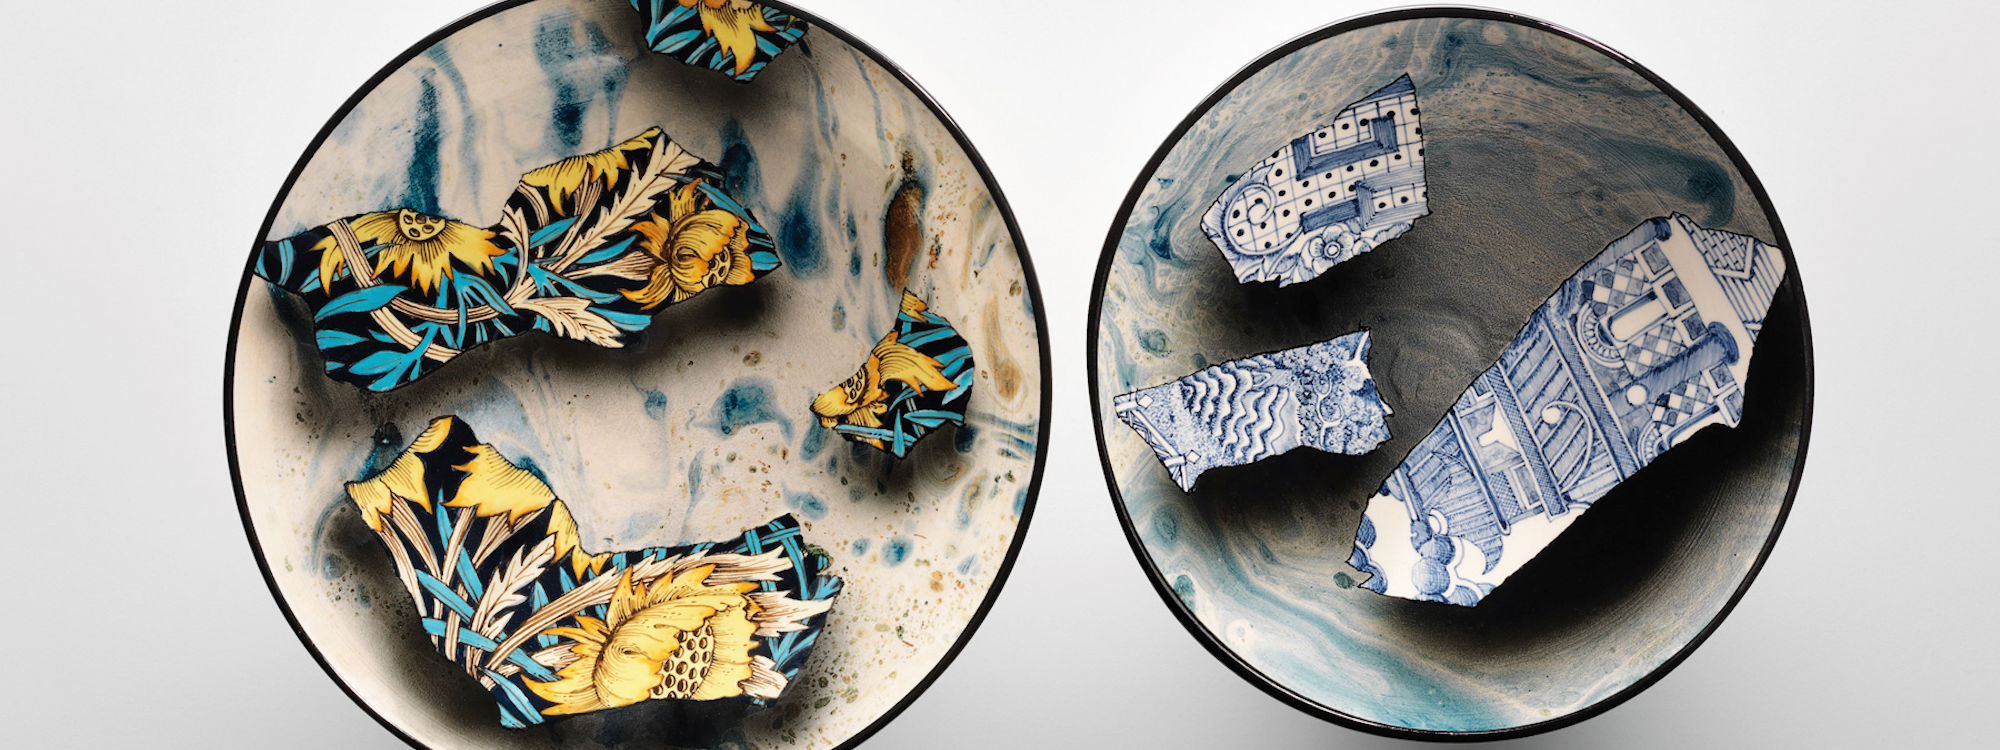 Stephen Bowers plates - Ceramic Review Magazine